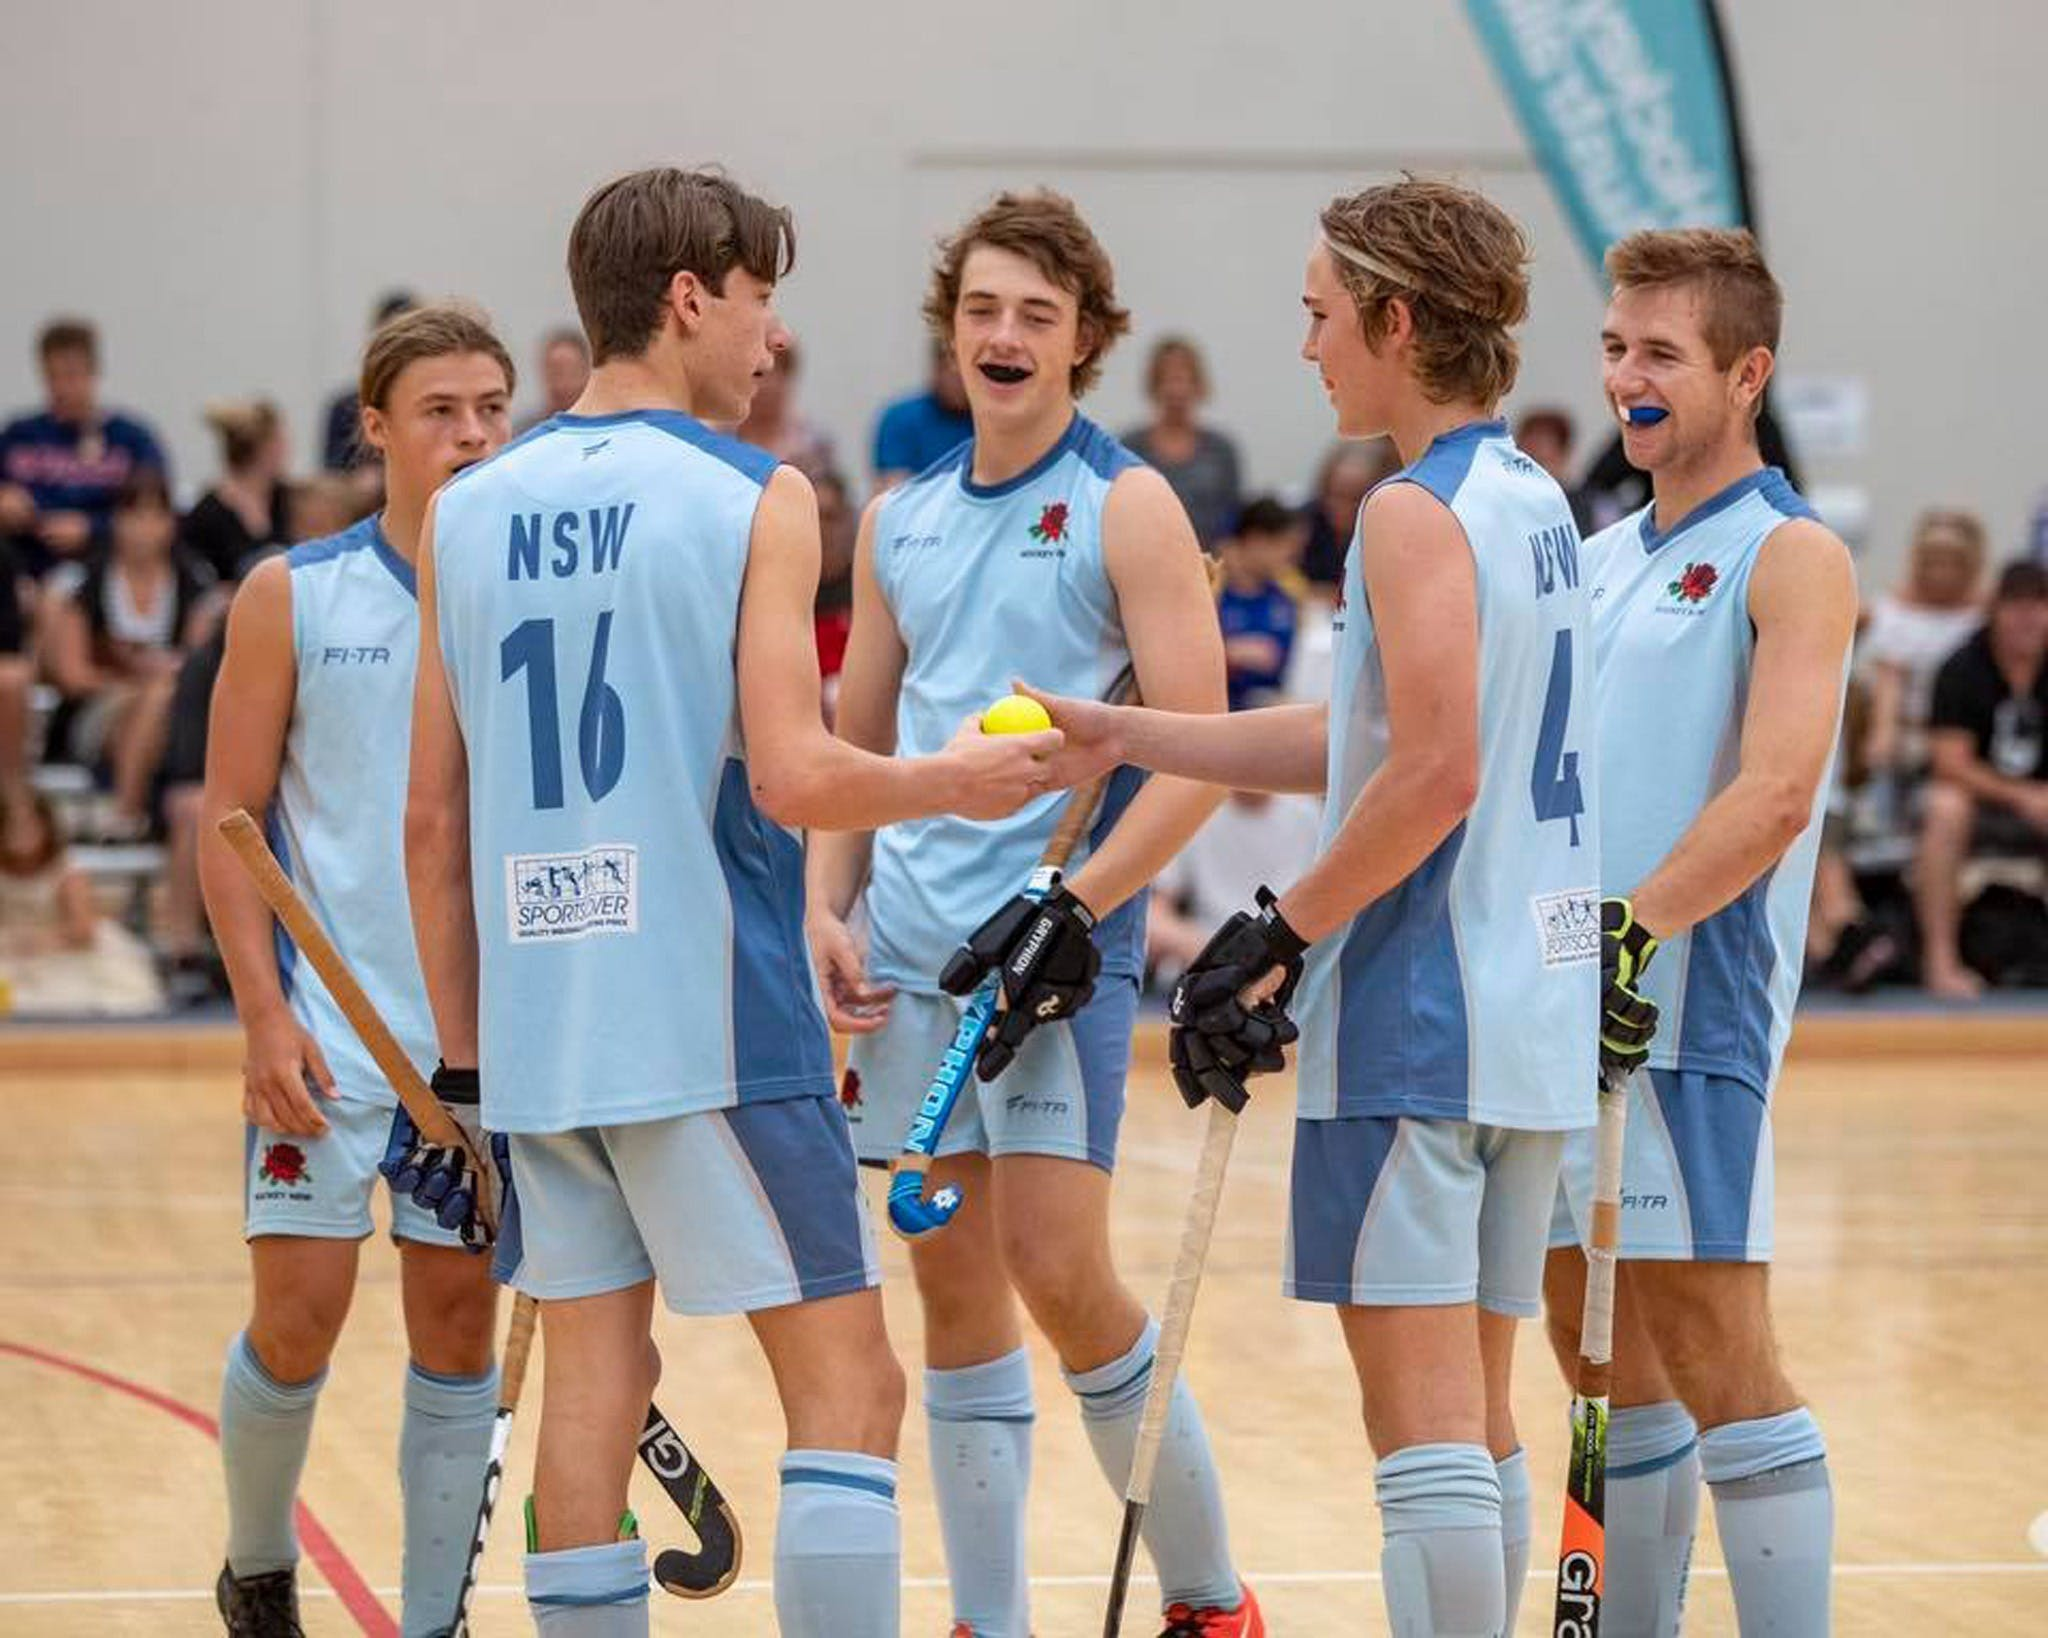 Hockey NSW Indoor State Championship  Open Men - Hotel Accommodation